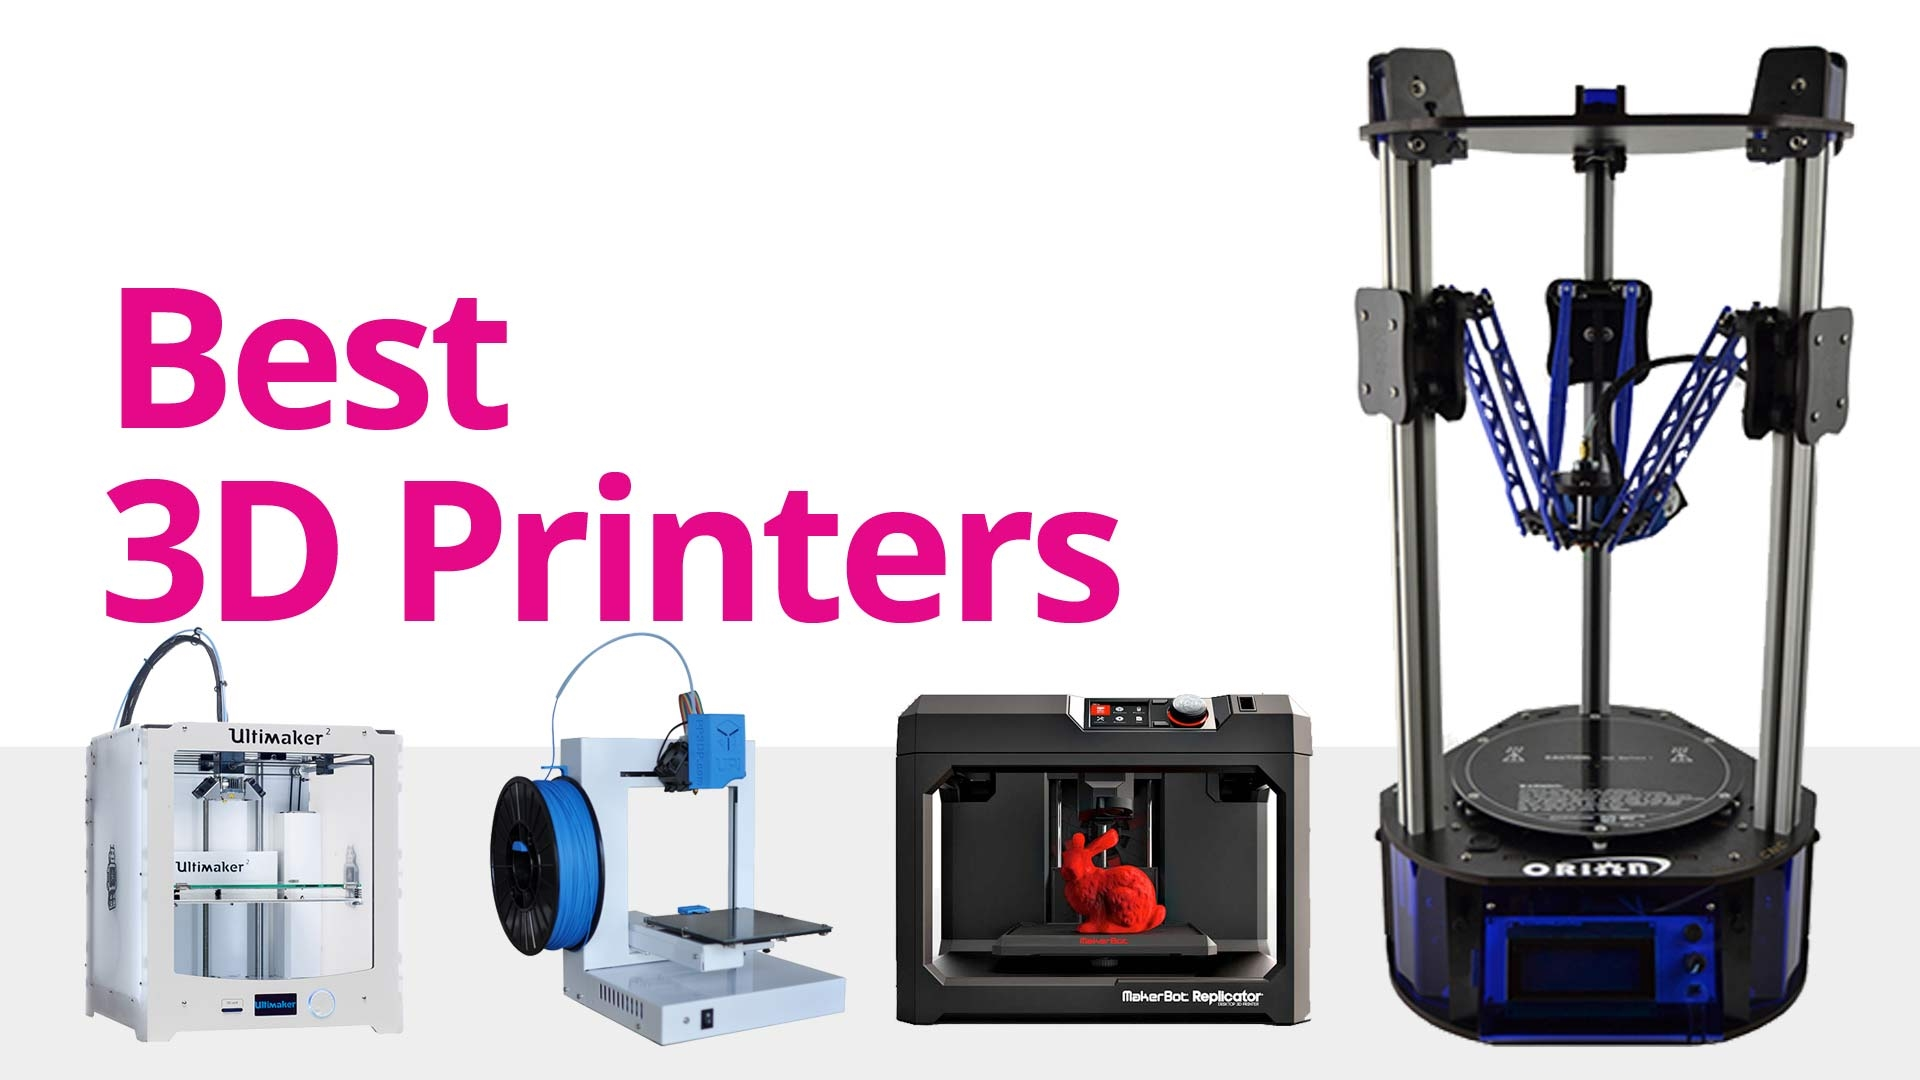 The best 3D printers of